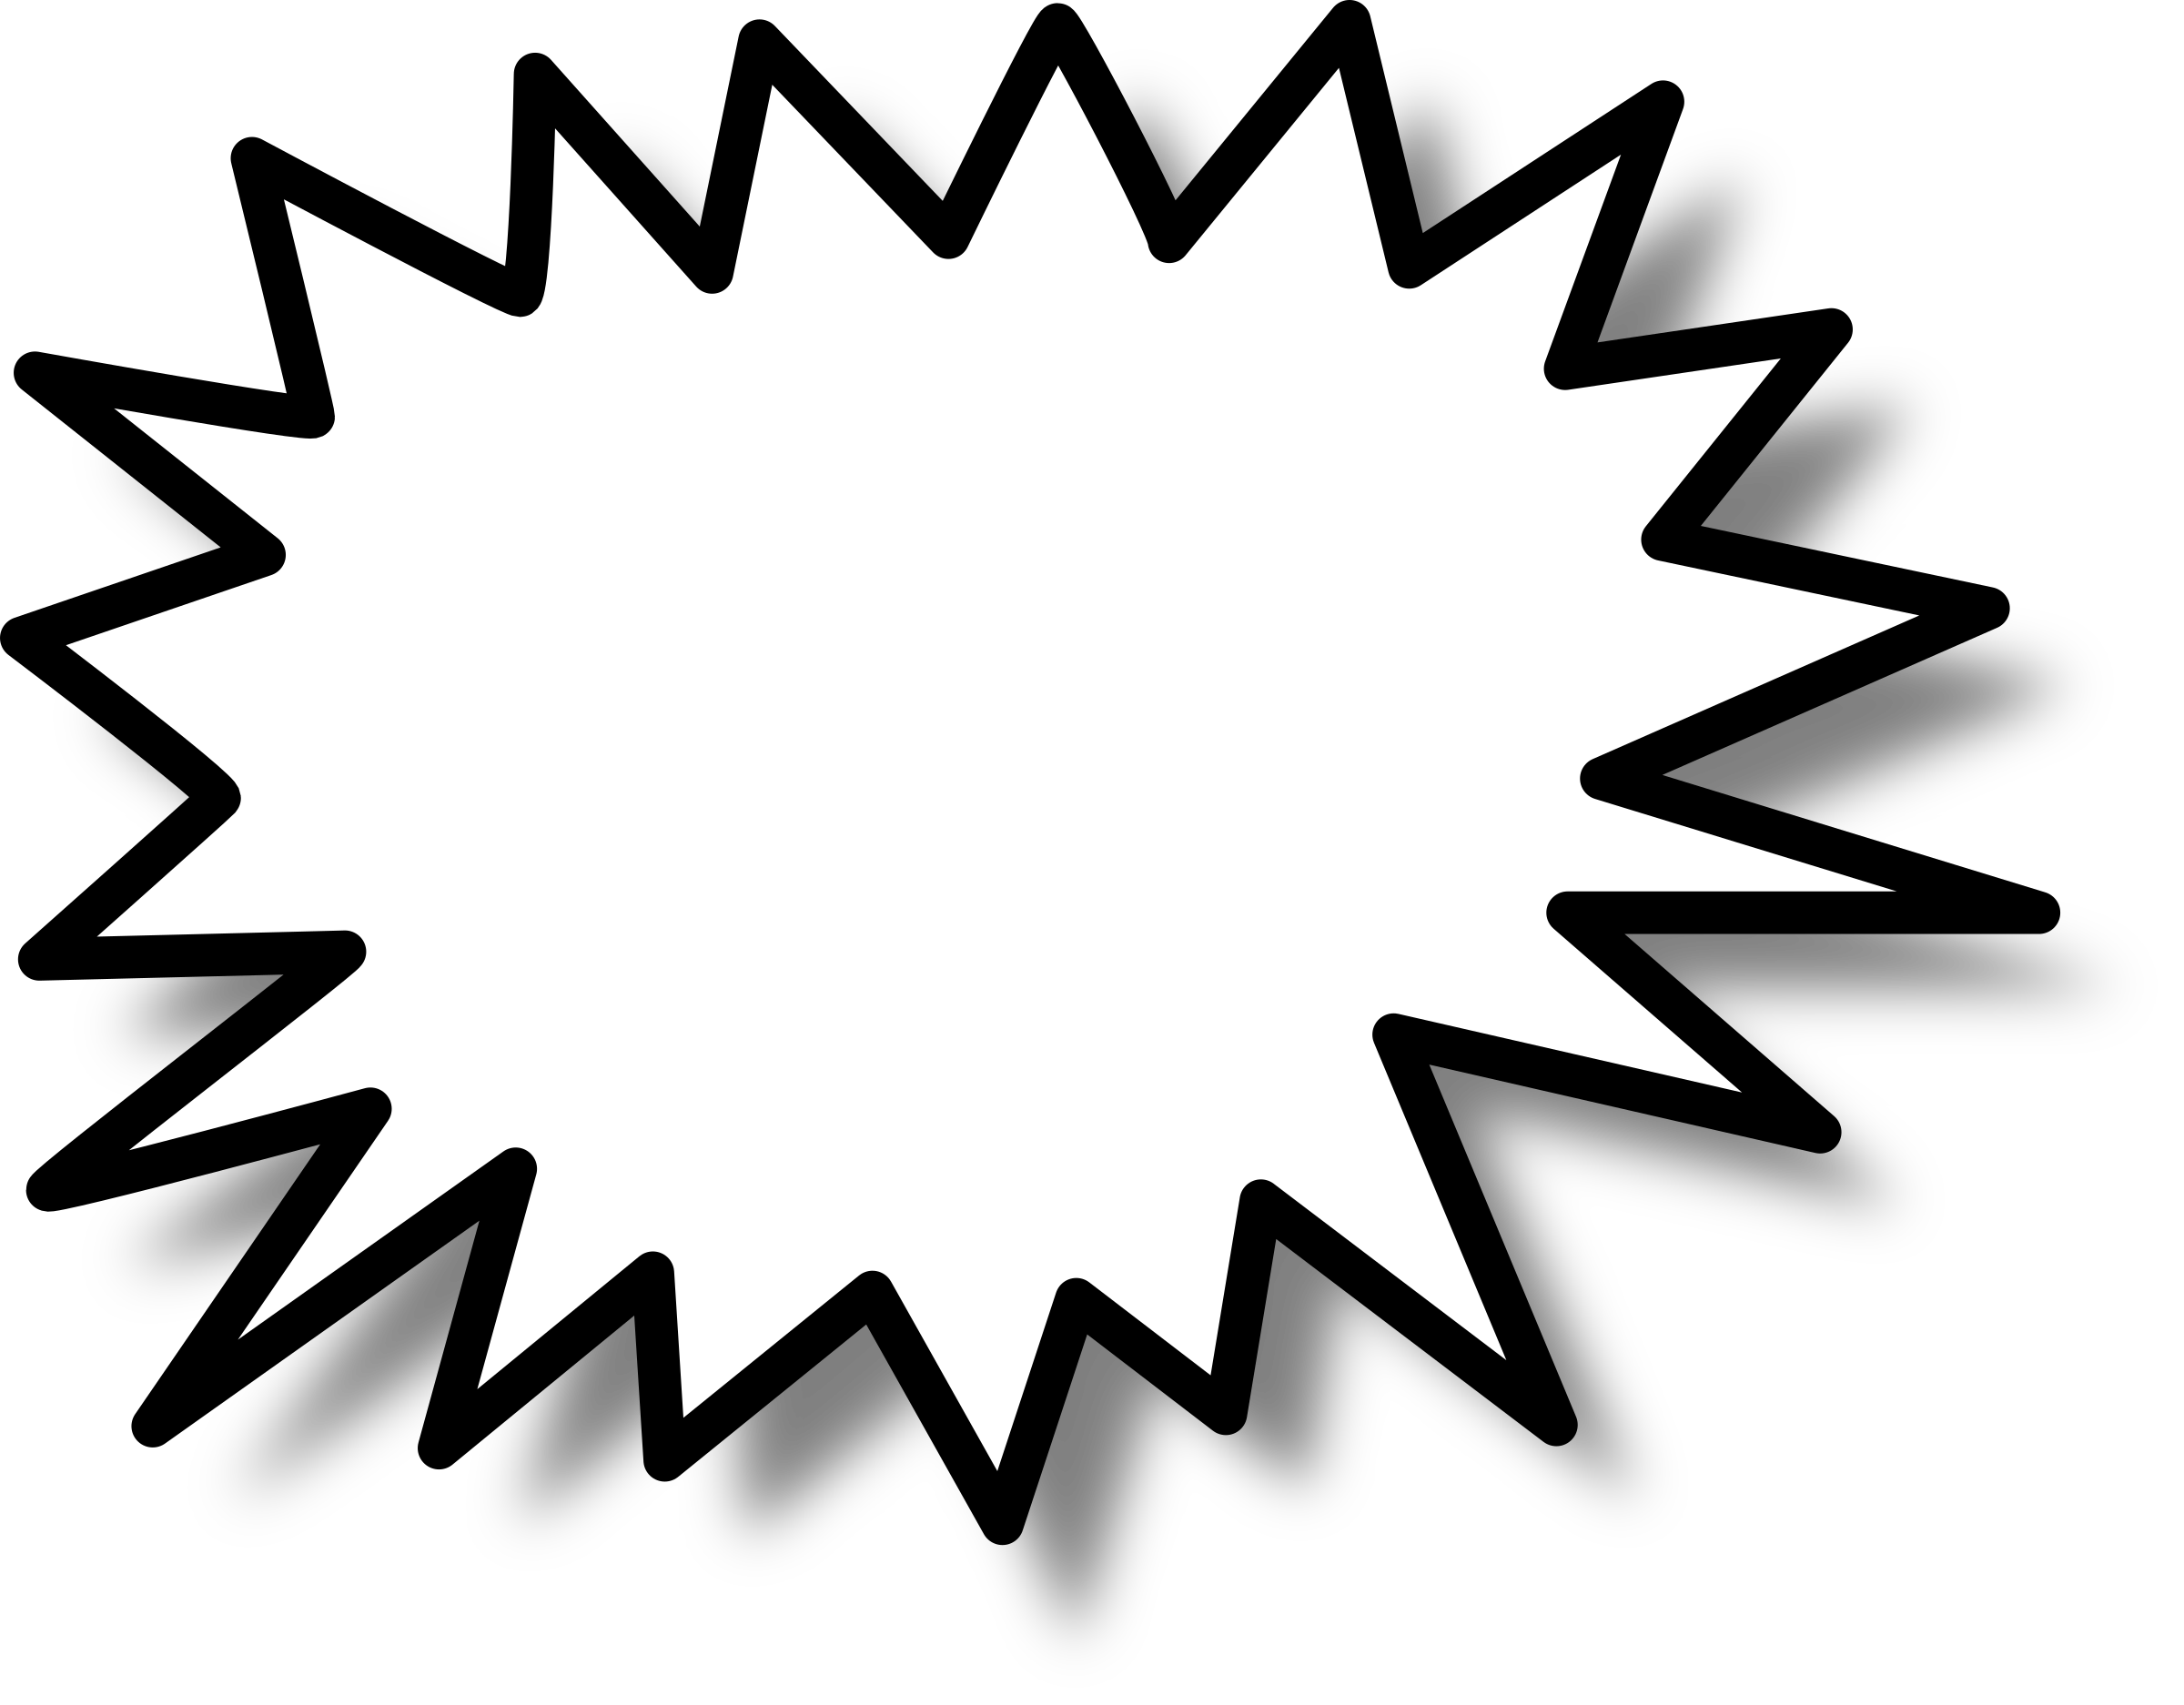 Flash clipart star. Callout big image png